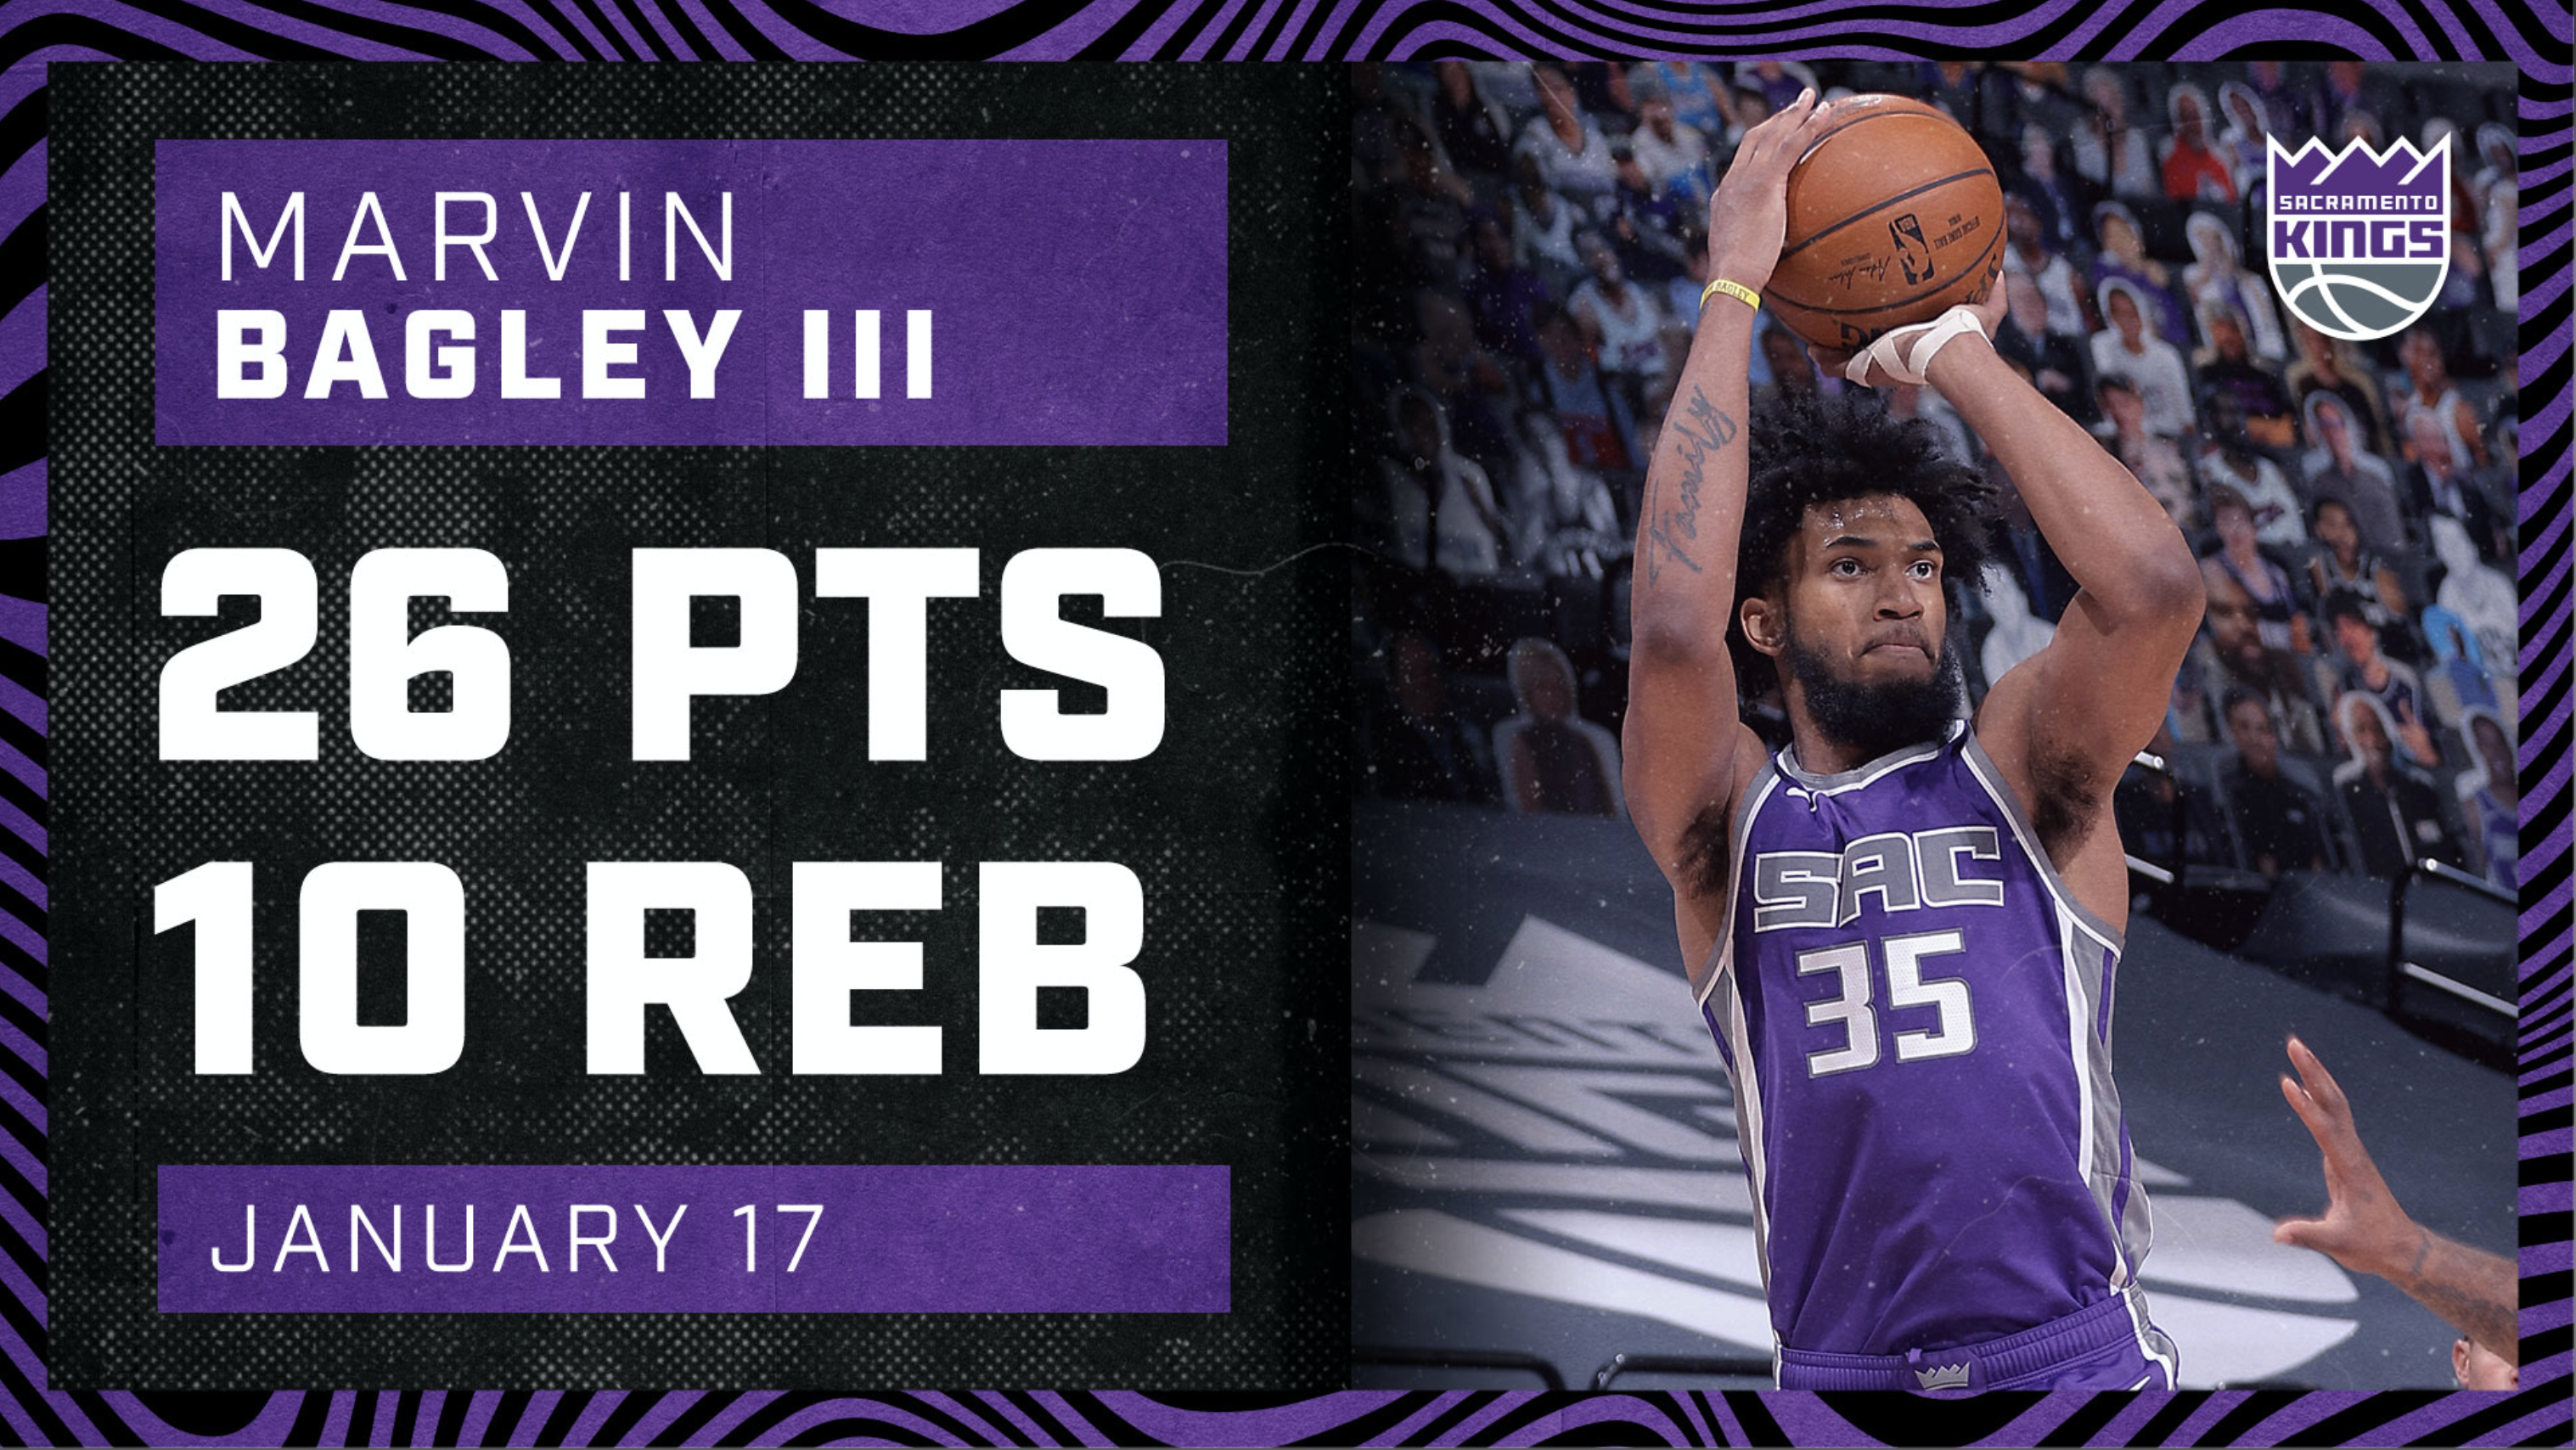 Marvin Bagley Secures a SOLID Double-Double | Kings vs Pelicans 1.17.20